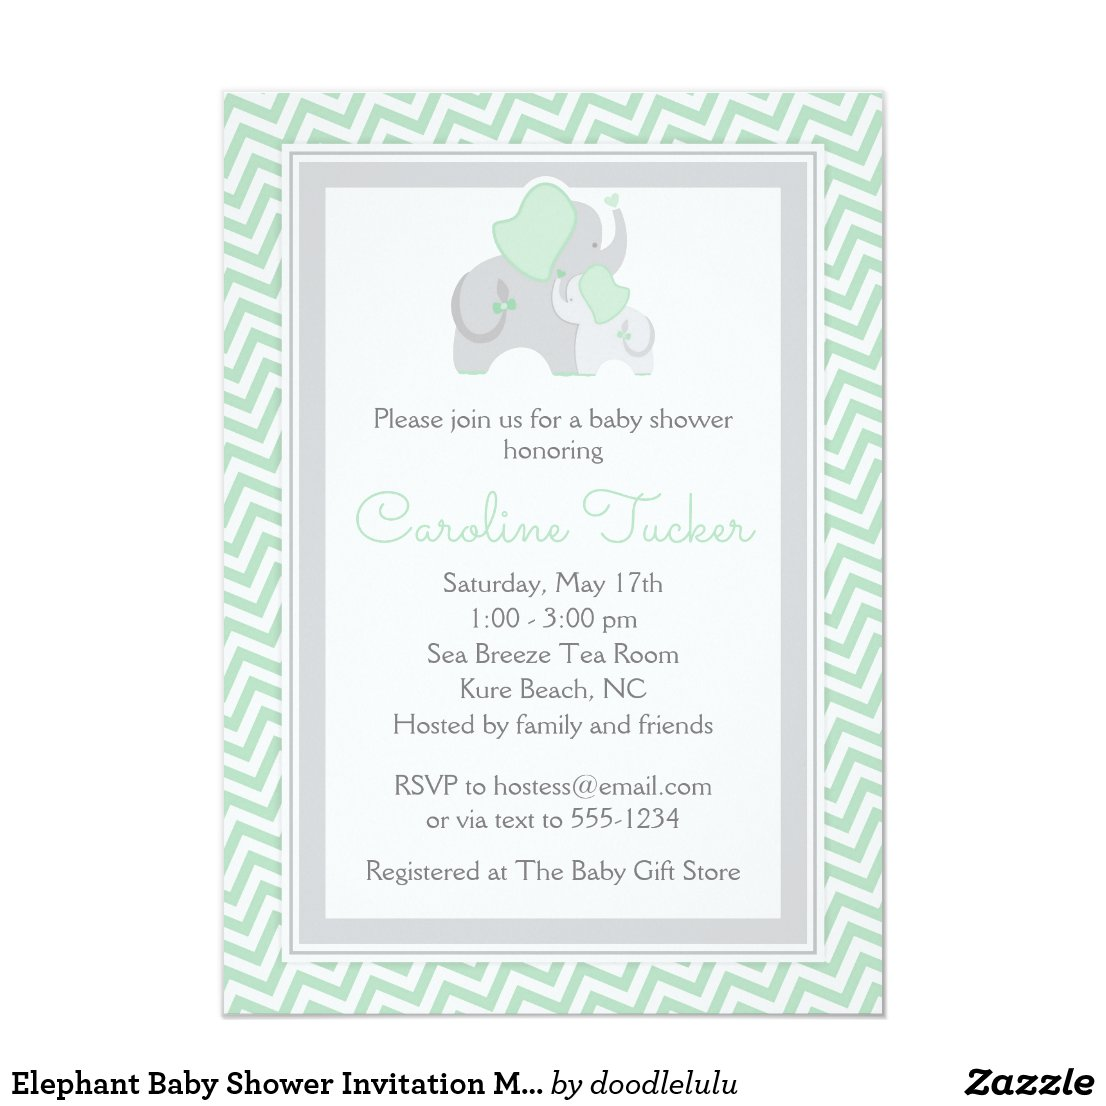 Elephant Baby Shower Invitation Mint Green Chevron